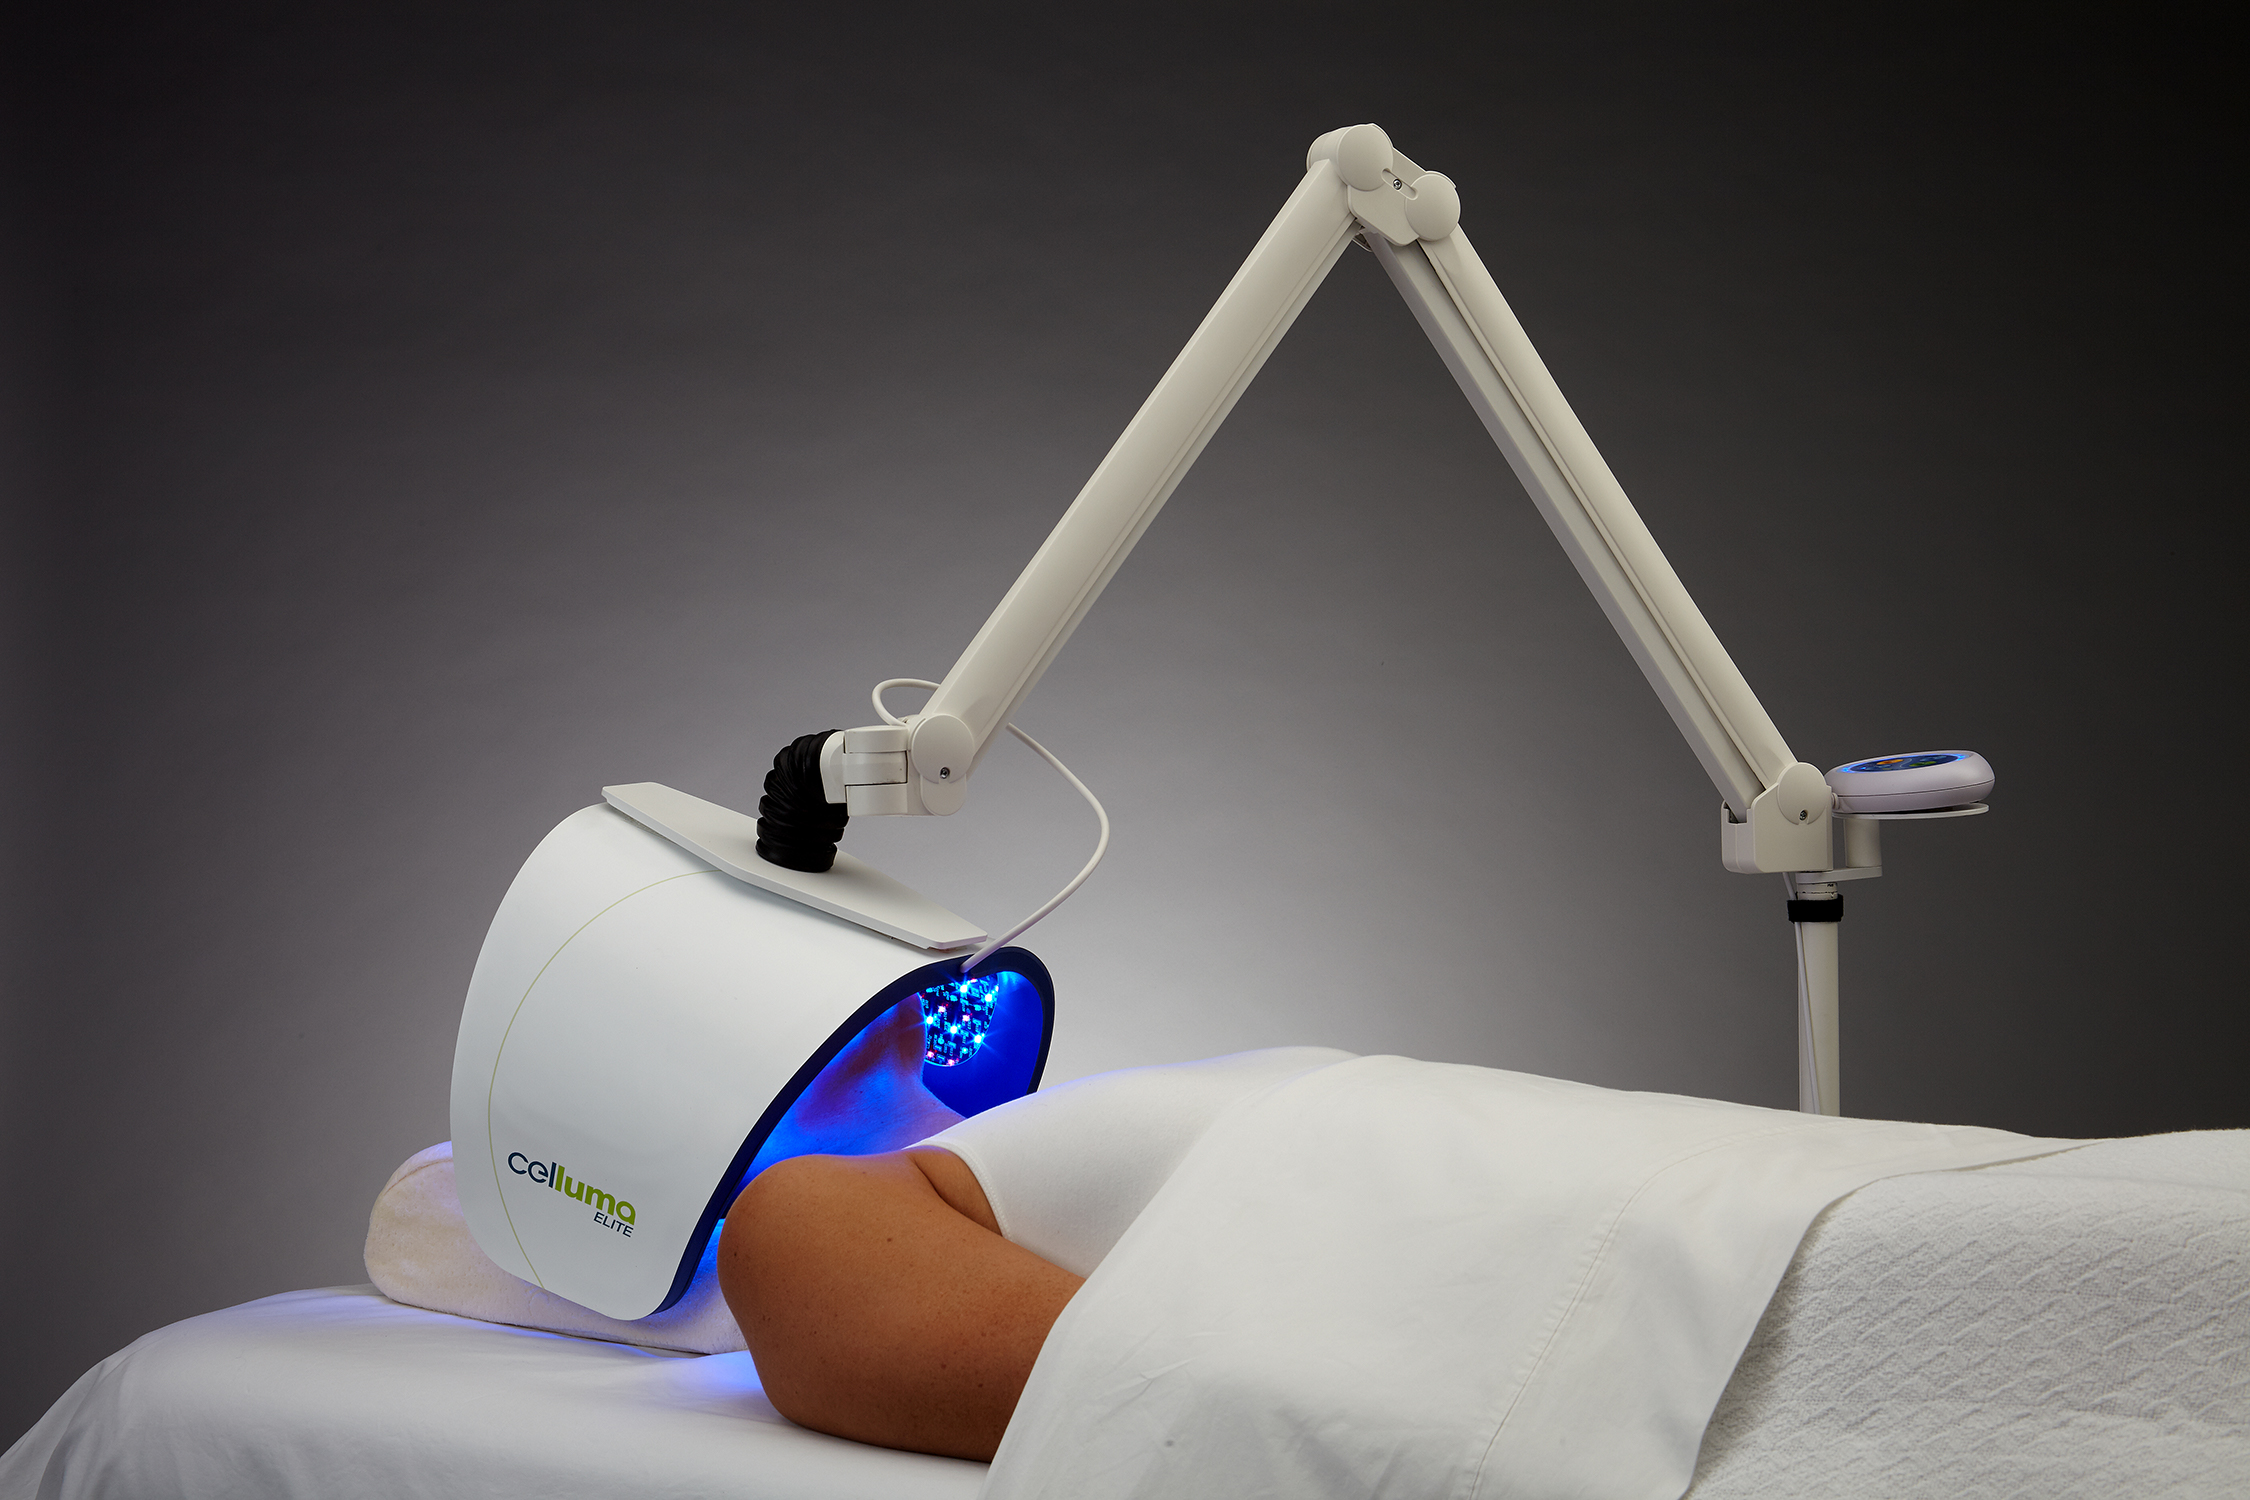 REJUVENATE YOUR SKIN… - BY MINIMIZING YOUR WRINKLES.DEFEAT YOUR ACNE.AND SOOTHE YOUR MUSCLESThese are extraordinary claims, and the Federal Drug Administration (FDA) has ruled that Celluma Light Therapy is justified in making them.